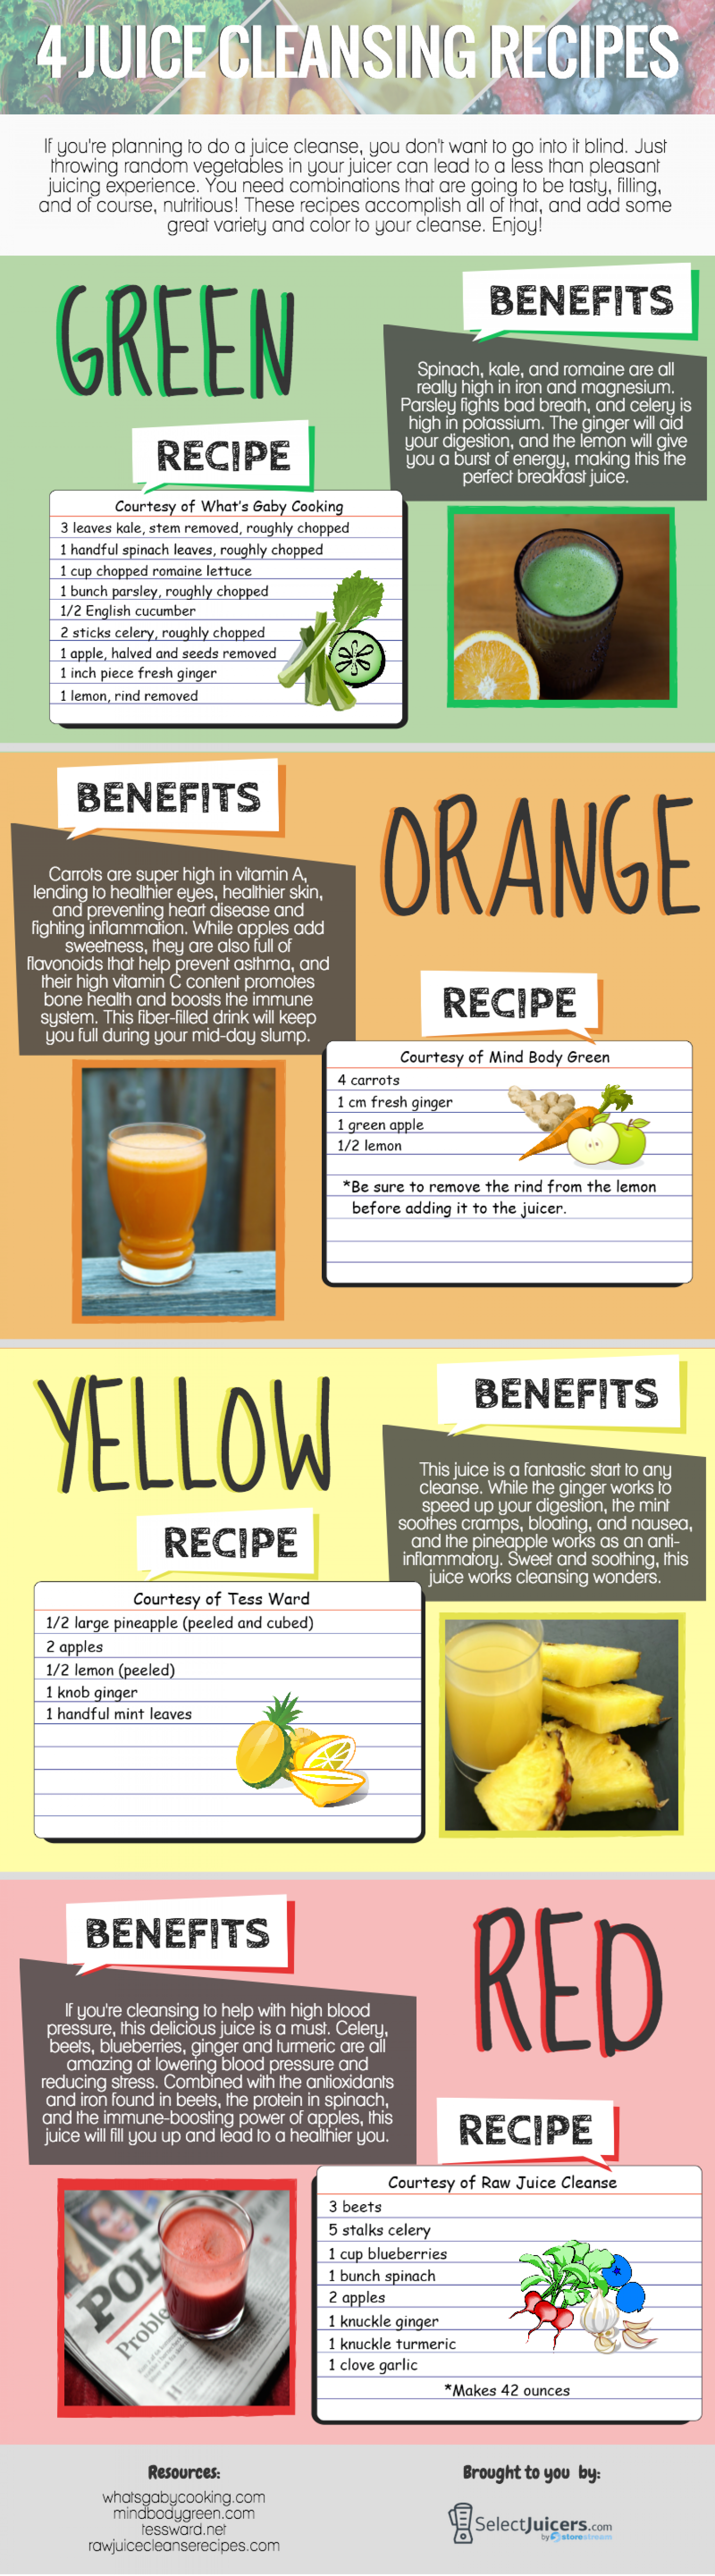 4 Juice Cleanse Recipes Infographic